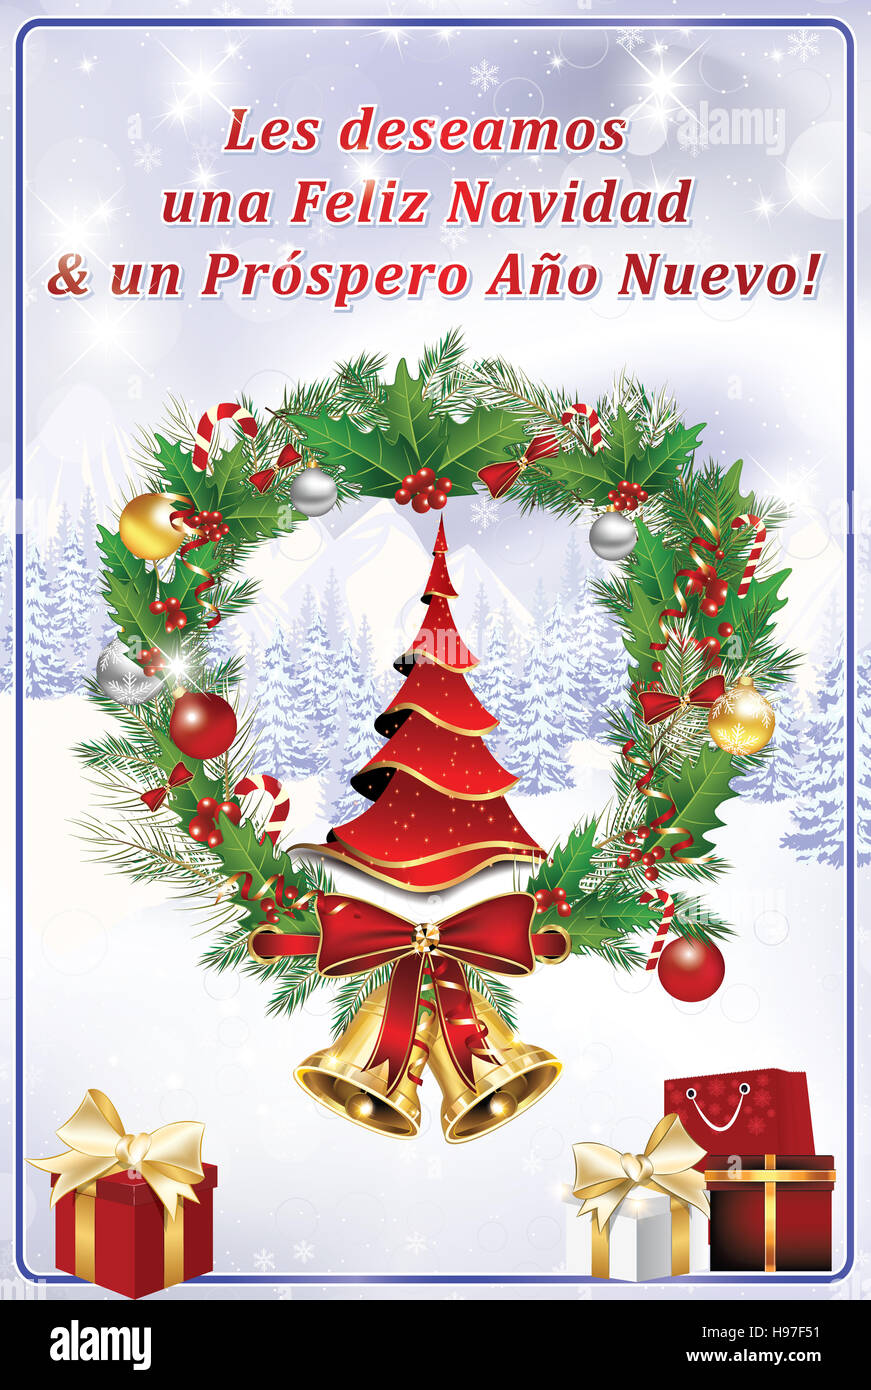 Corporate winter holiday greeting card in spanish language we corporate winter holiday greeting card in spanish language we wish you merry christmas and a happy new year print colors used kristyandbryce Images